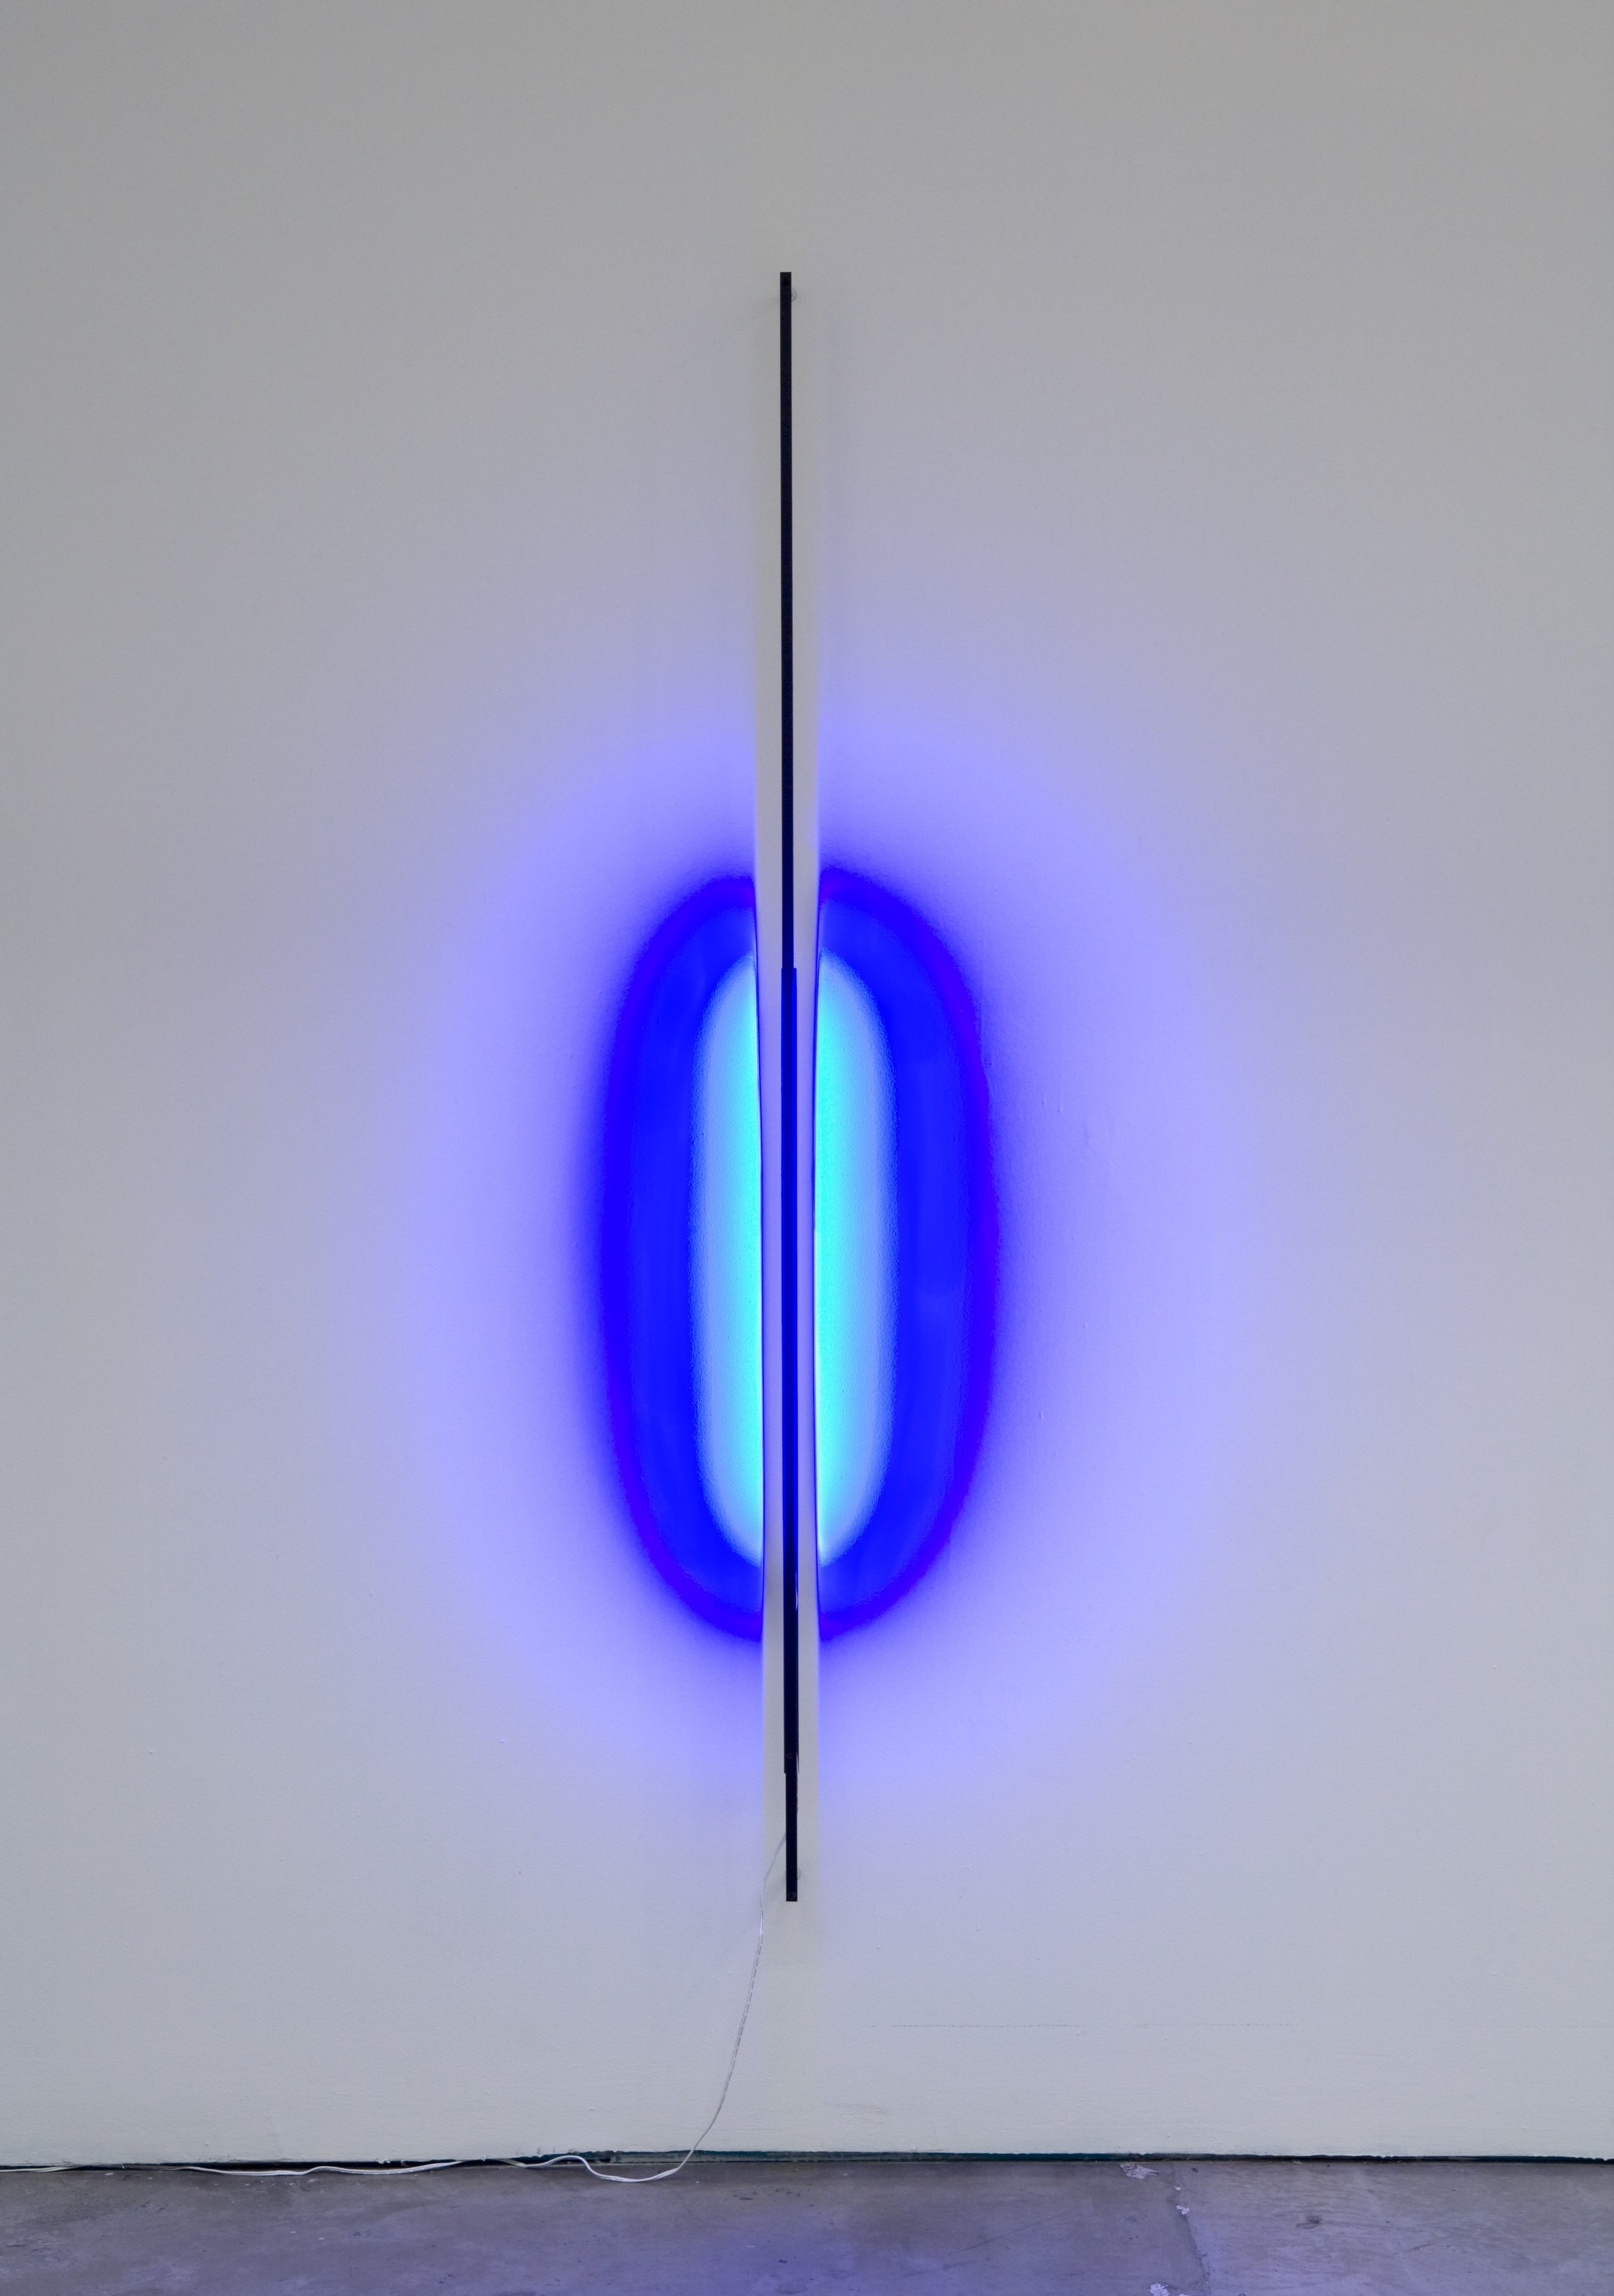 Kamau Amu Patton:  Light Bar, Blue , 2011; metal and LED strip; 72 1/2 x 1/2 in.; BAMPFA, Collectors' Circle purchase: Bequest of Phoebe Apperson Hearst, by exchange, with additional support from Elizabeth and James Adams. © Kamau Patton.